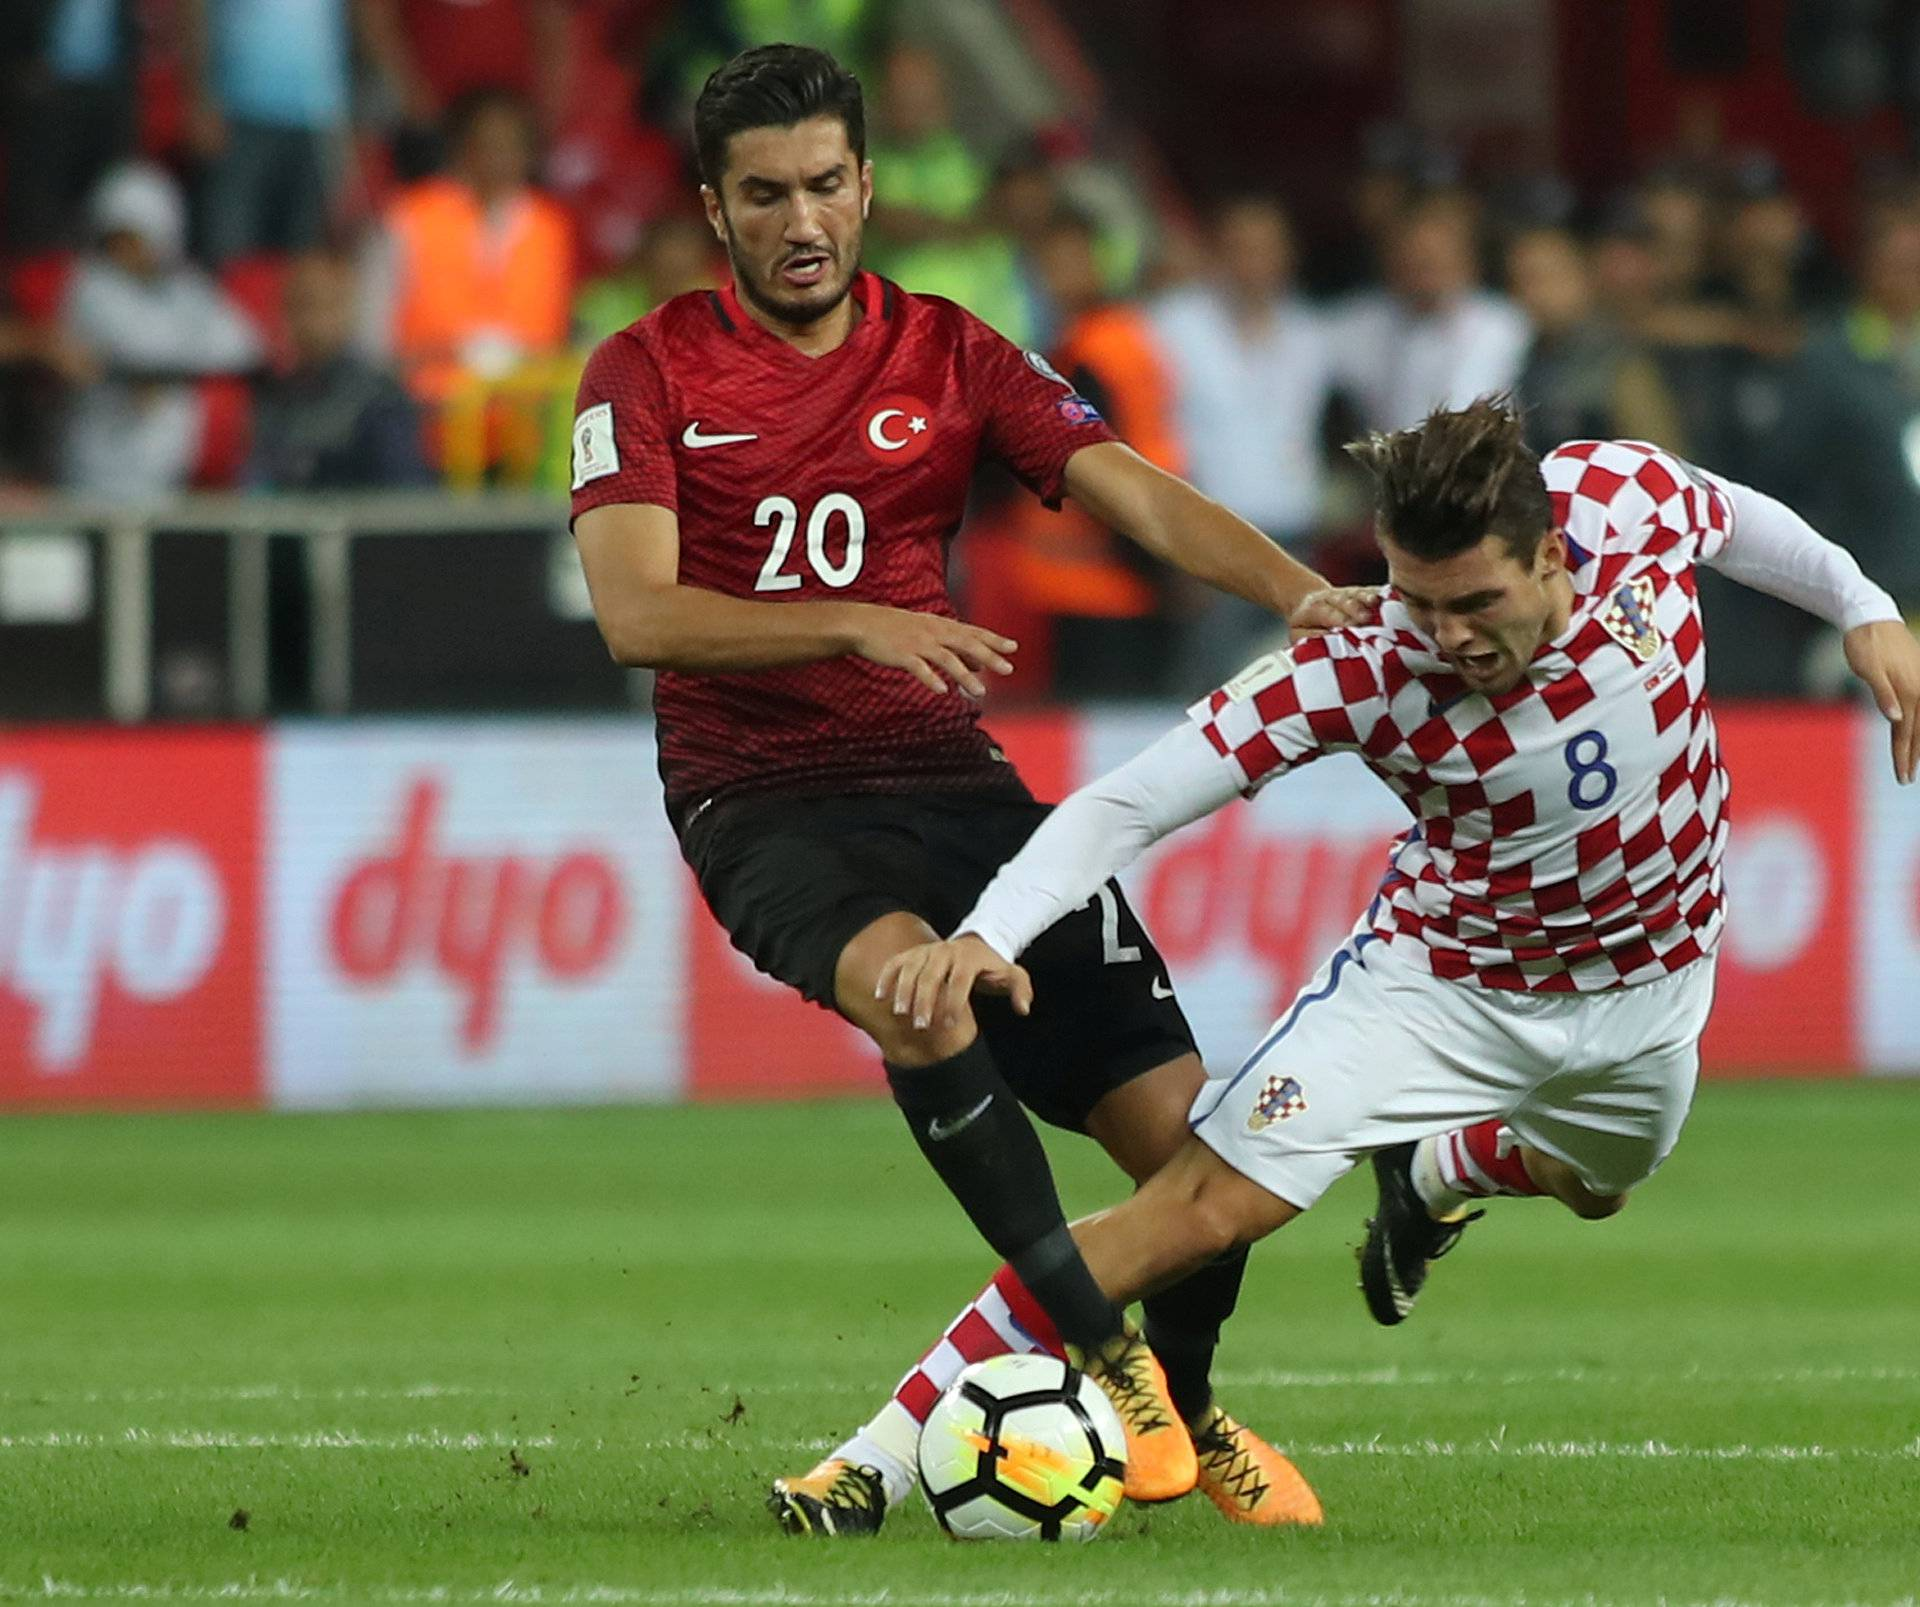 2018 World Cup Qualifications - Europe - Turkey vs Croatia